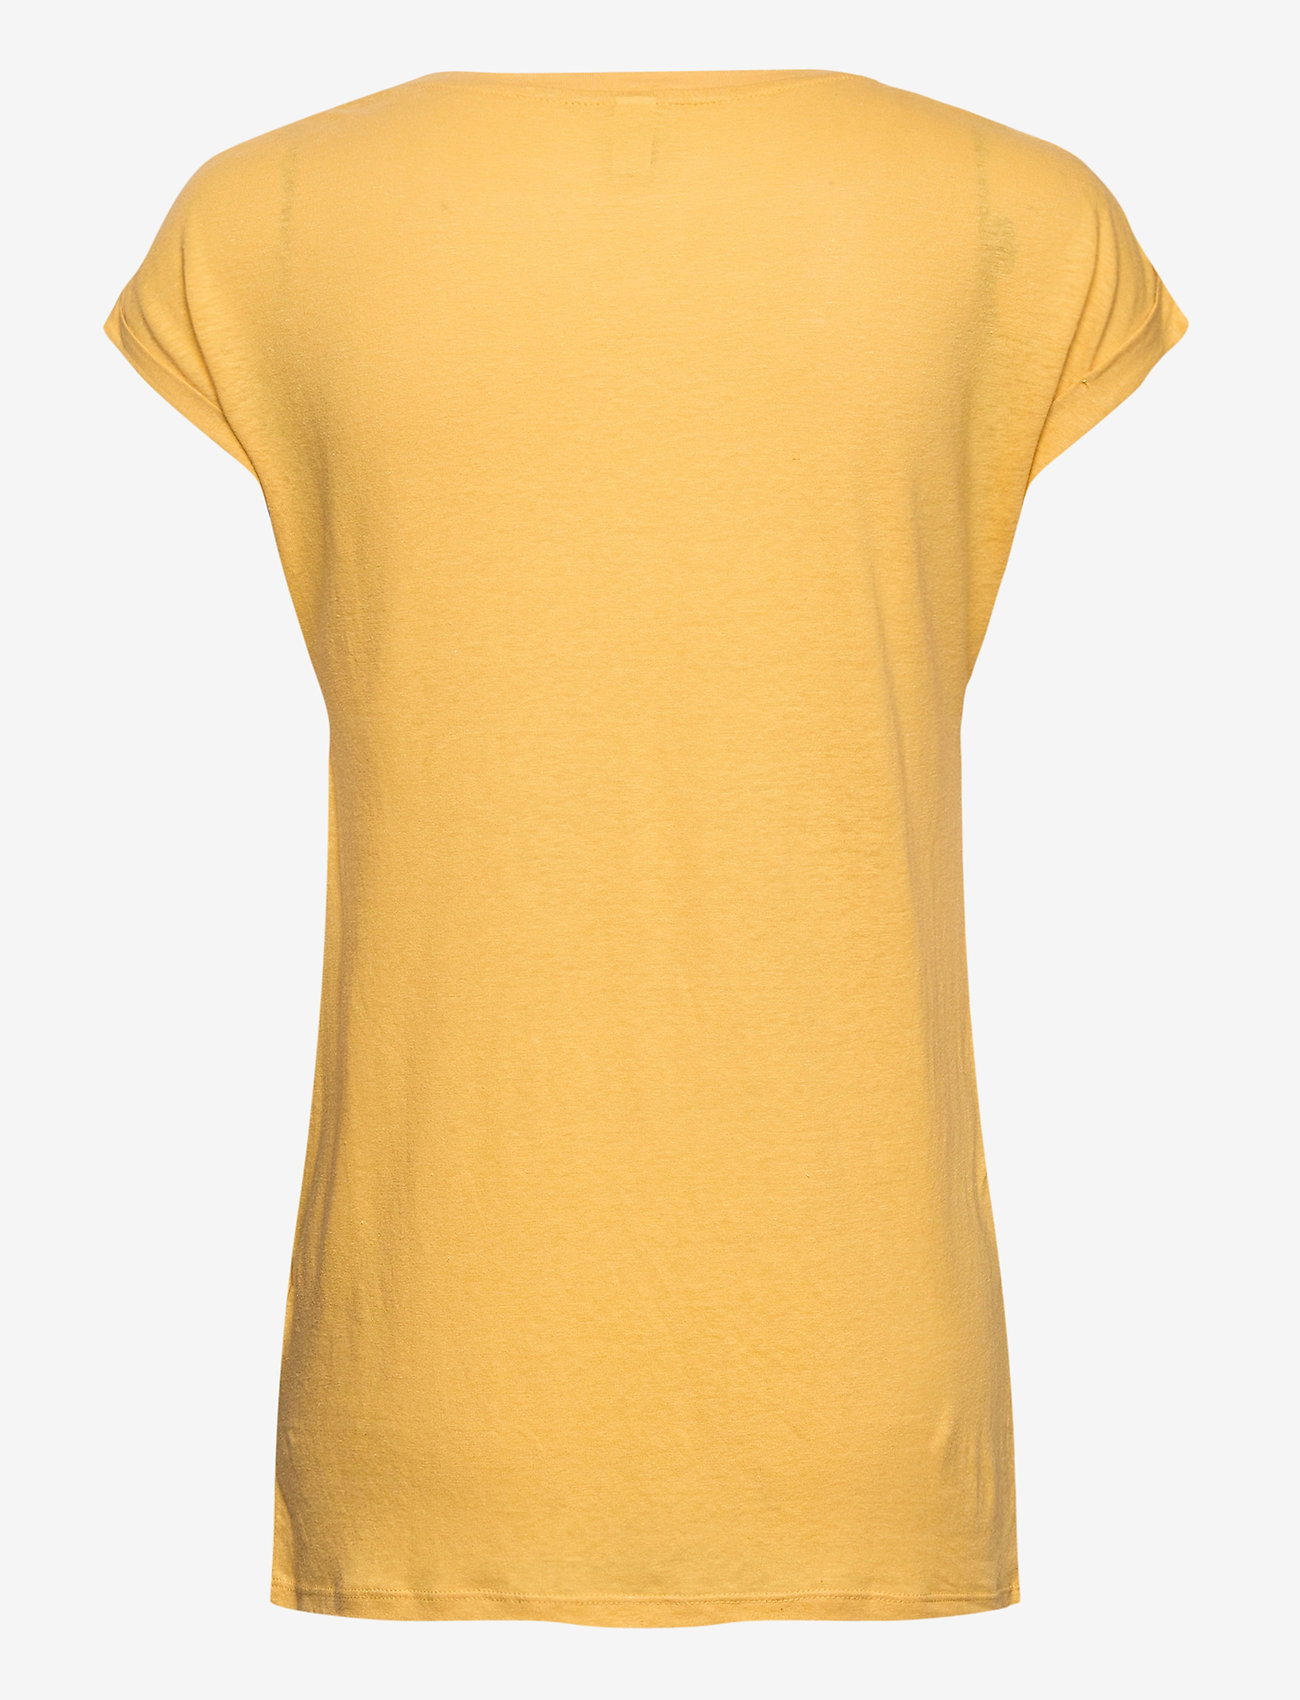 Soyaconcept - SC-ISABEL - t-shirts - yellow - 1